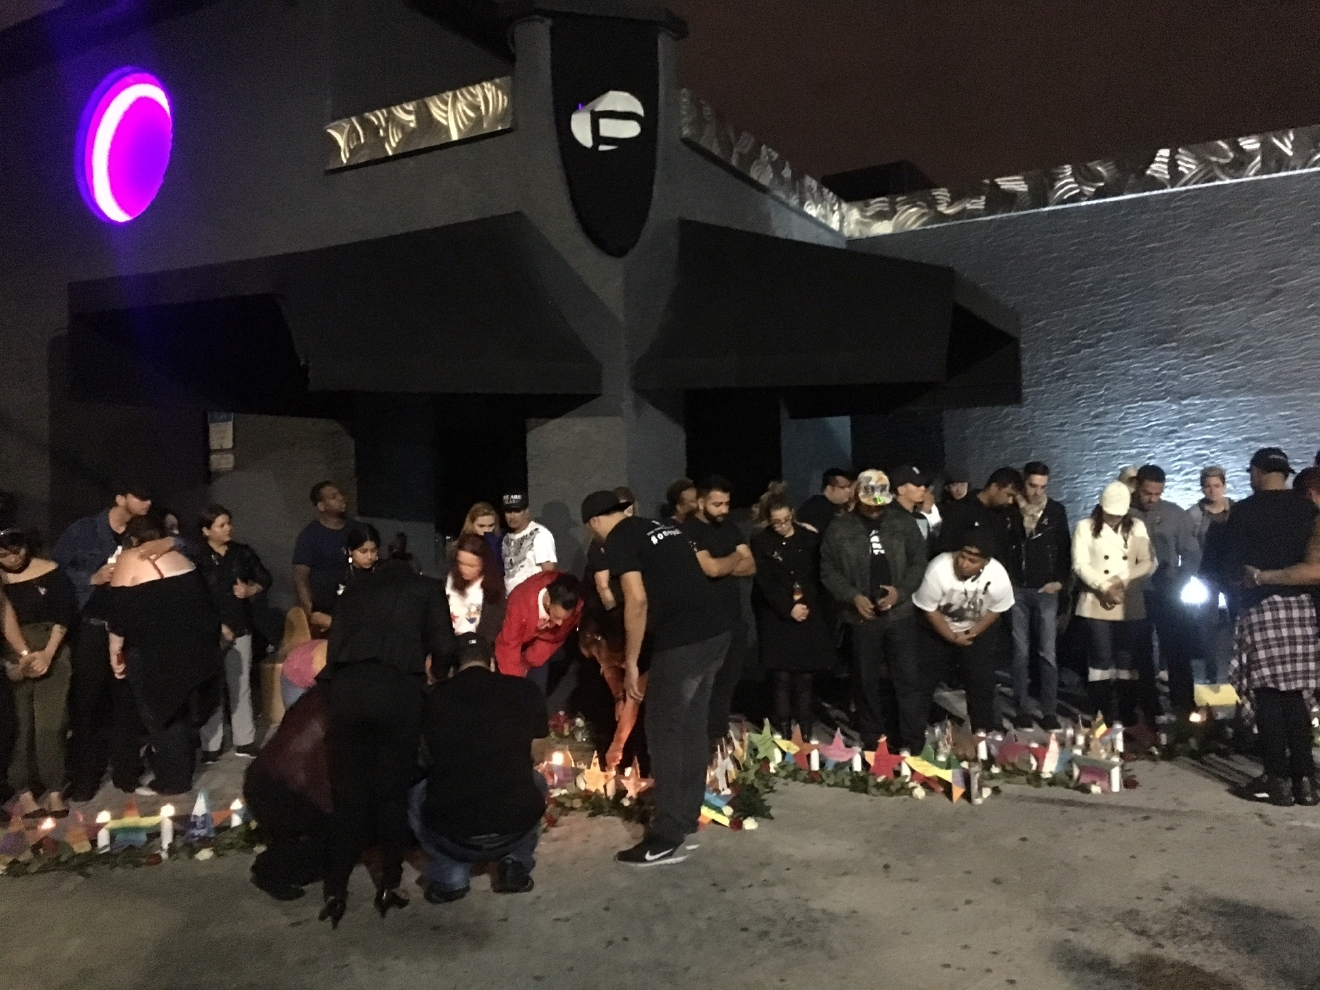 Family and friends of victims, and survivors of the Pulse nightclub attack gather at the club at 2:02 a.m., the time when the shooting started, on Monday, Dec. 12, 2016, the six-month anniversary of the tragedy. (Christal Hayes/Orlando Sentinel via AP)